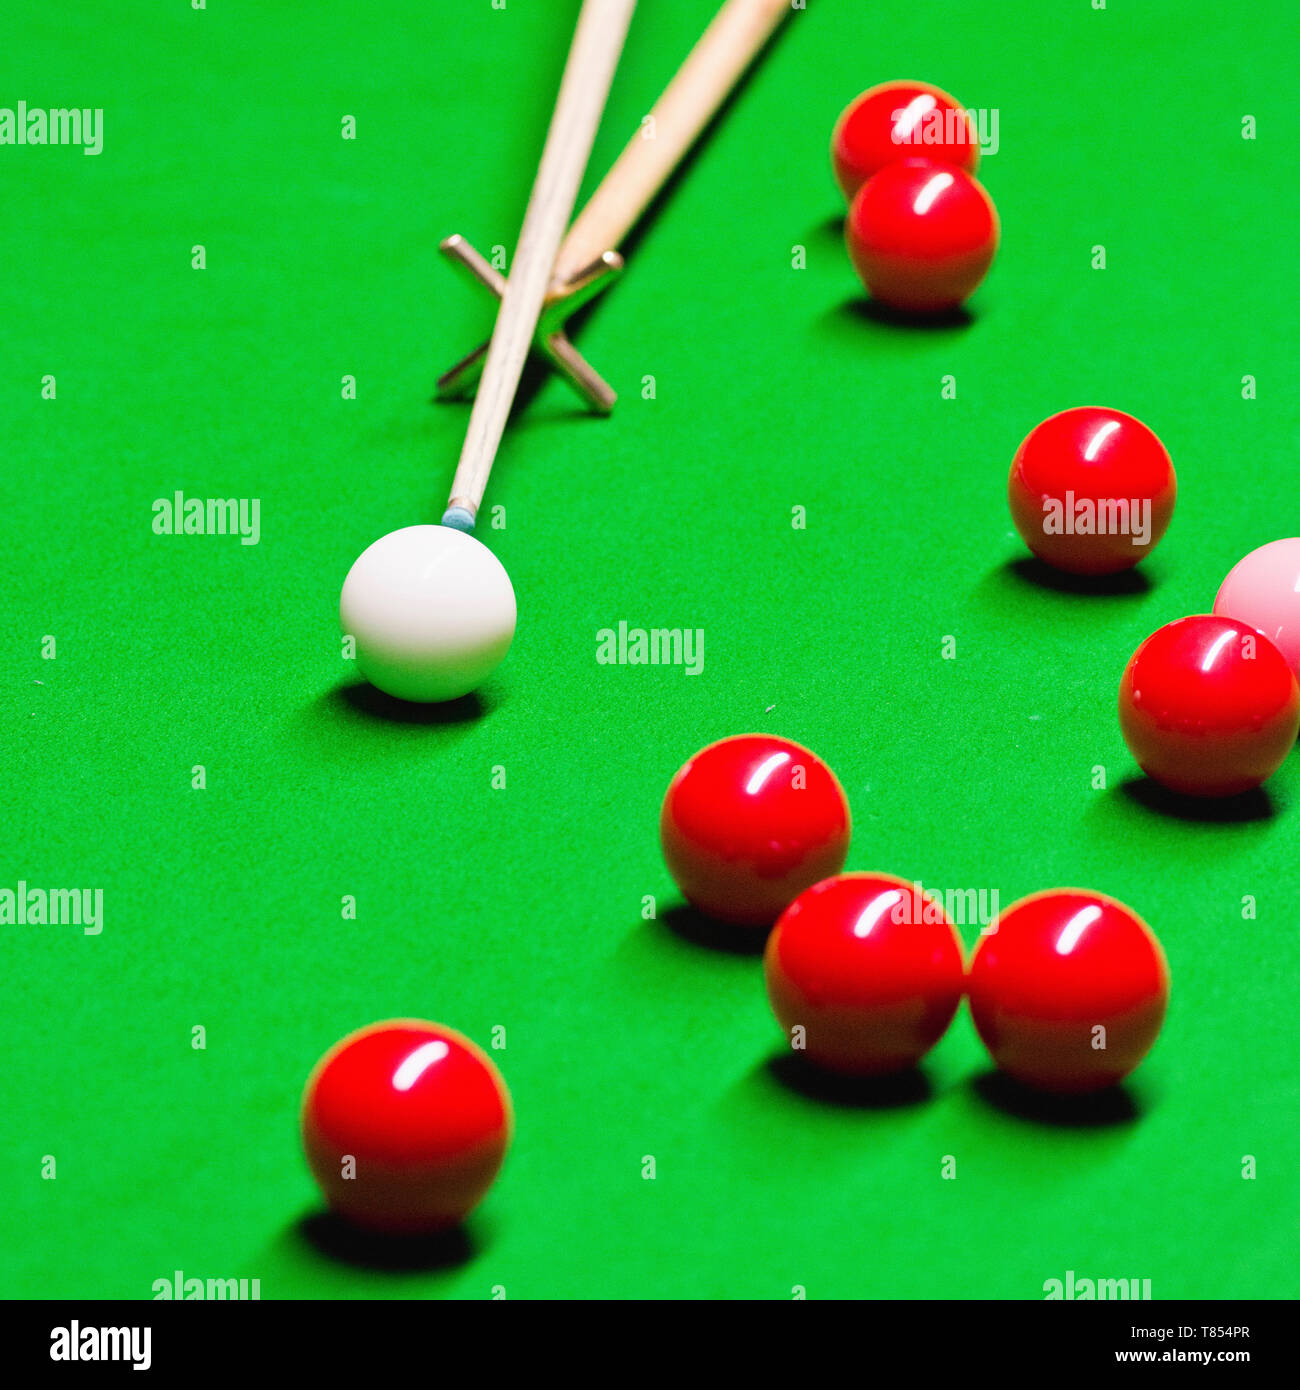 Snooker cue on rest - Stock Image